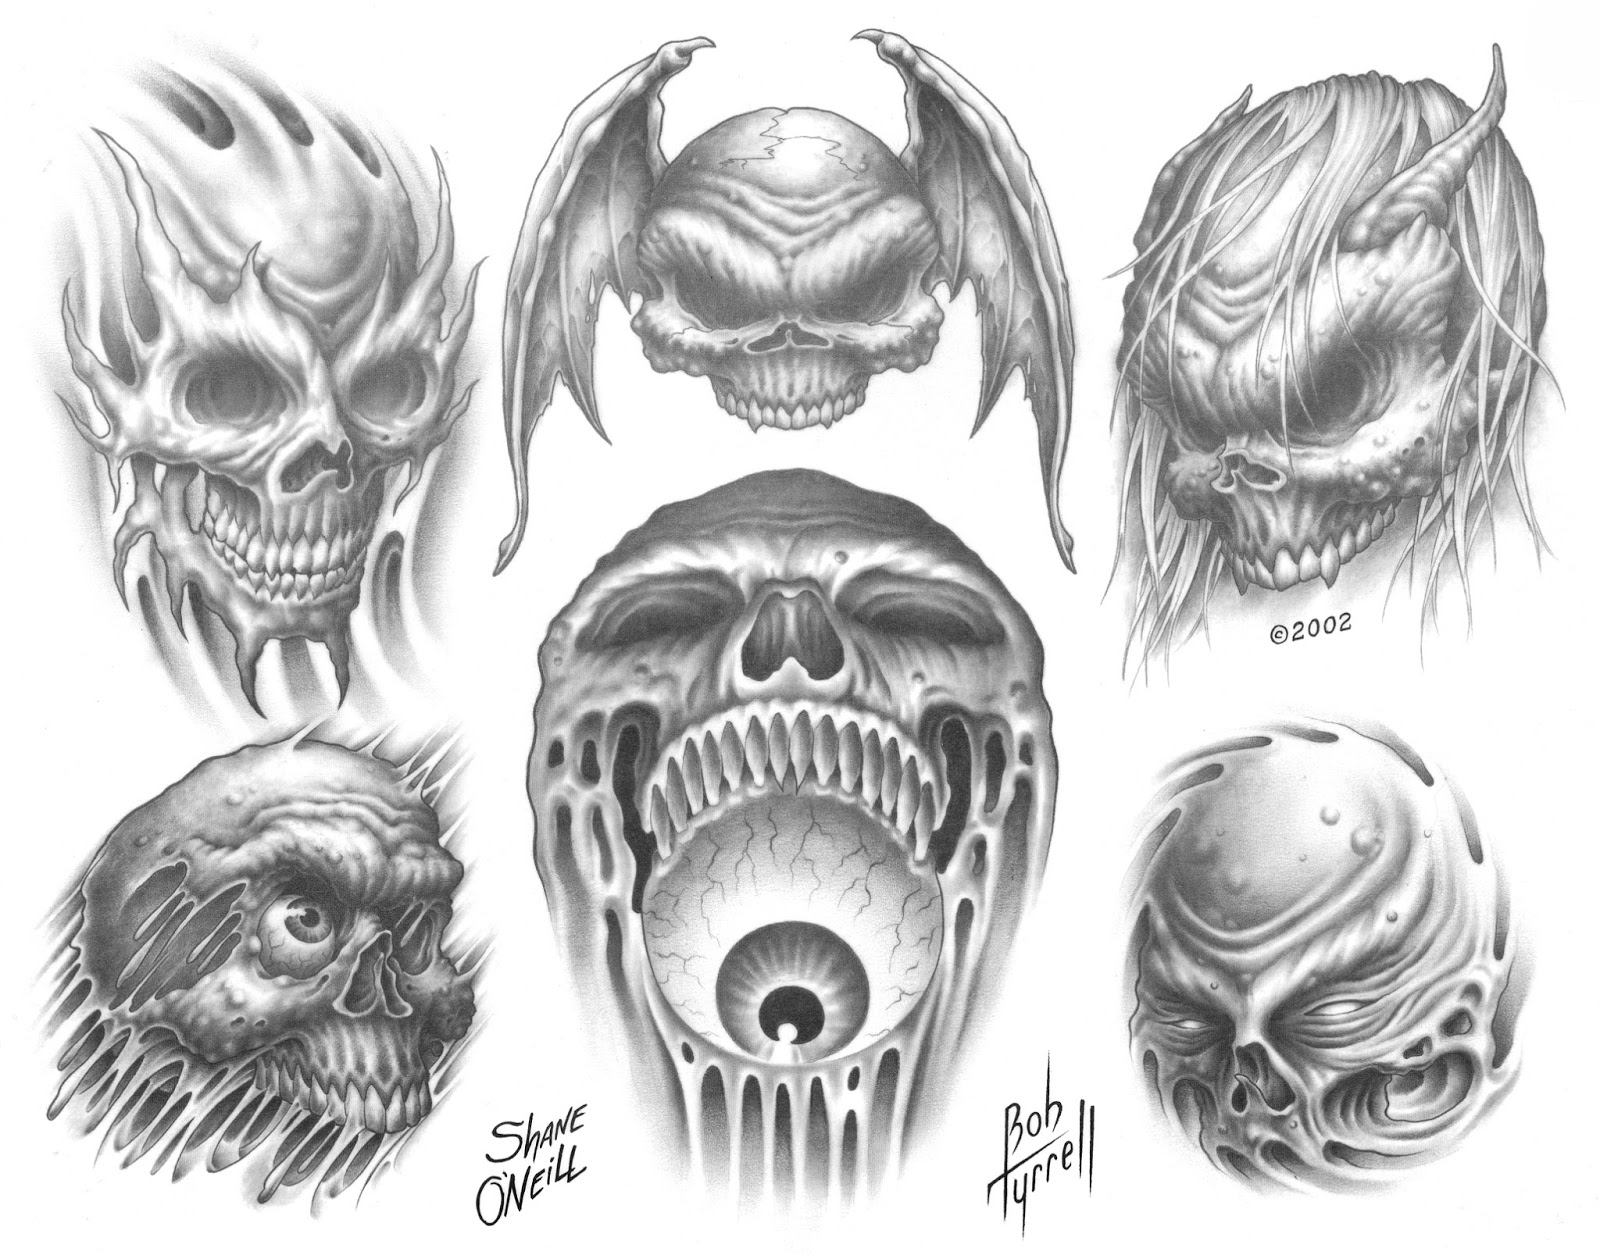 Tattoo designs of demons for men and girls home finance a wicked cunning demon smiling out of broken scary teeth forms a good demon tattoo for the chest no one really knows what is going on in your mind buycottarizona Image collections